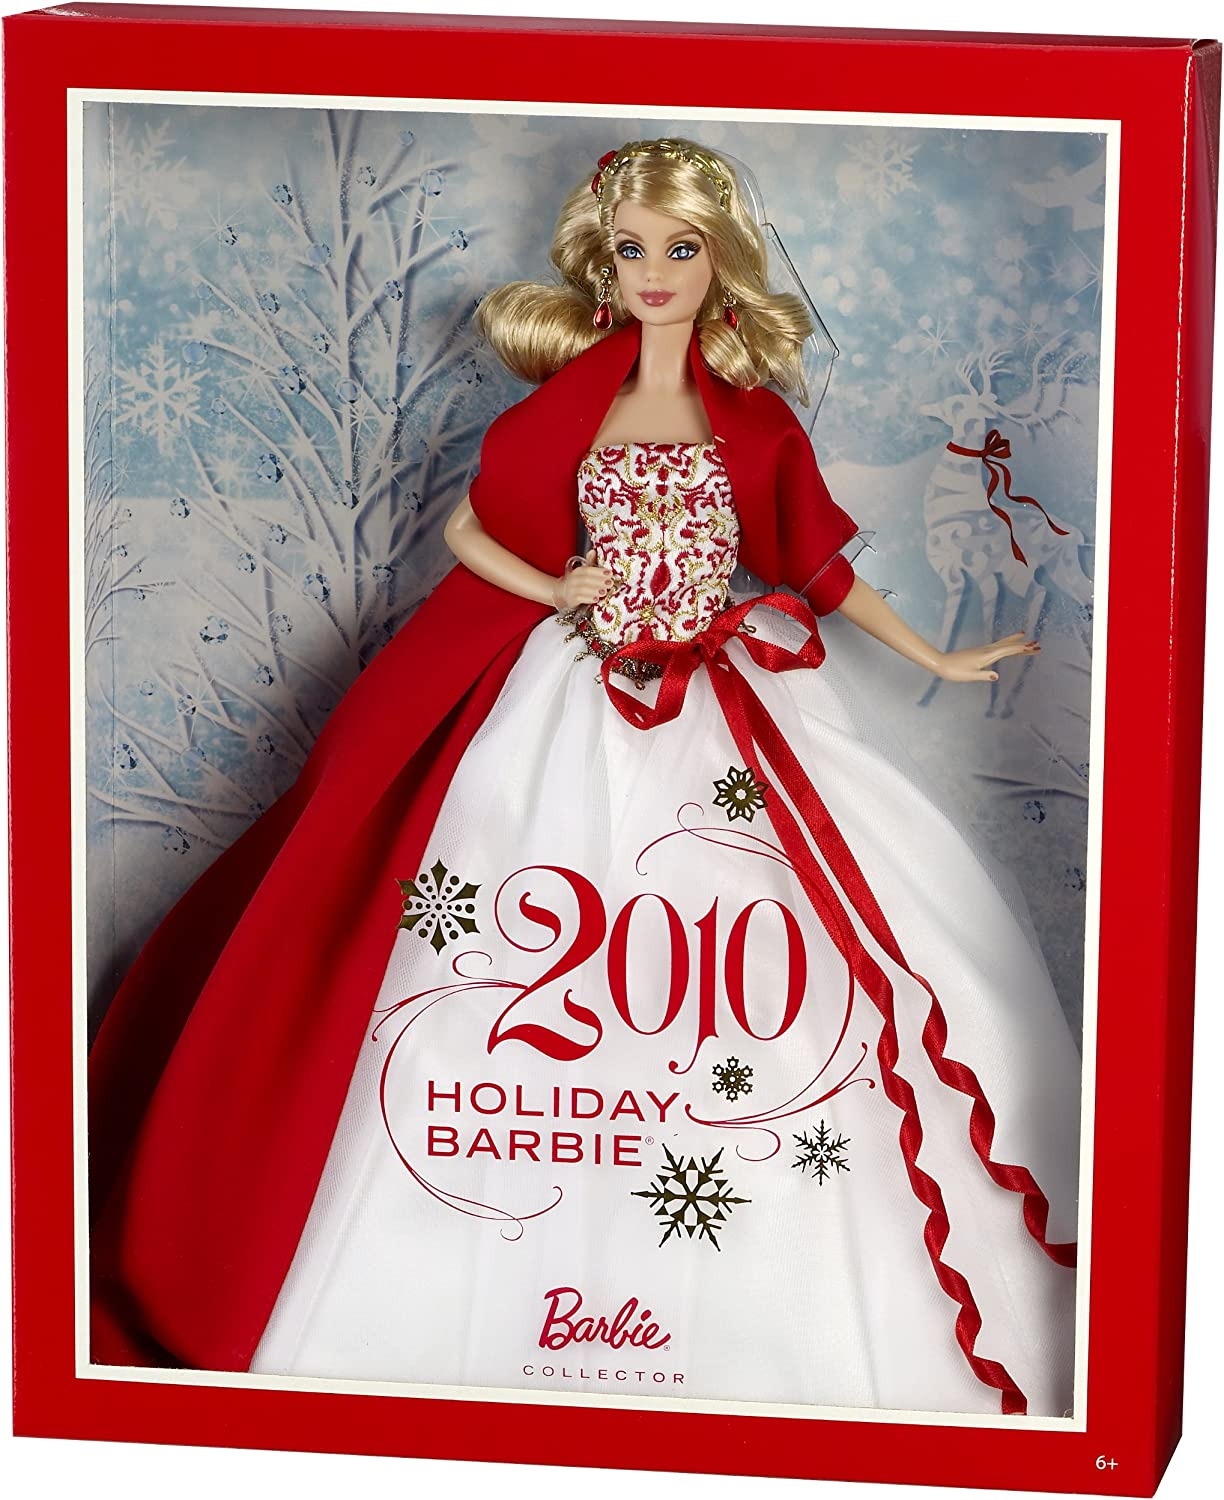 Barbie Noel 2010 Amazon.com: Barbie Collector 2010 Holiday Doll: Toys & Games